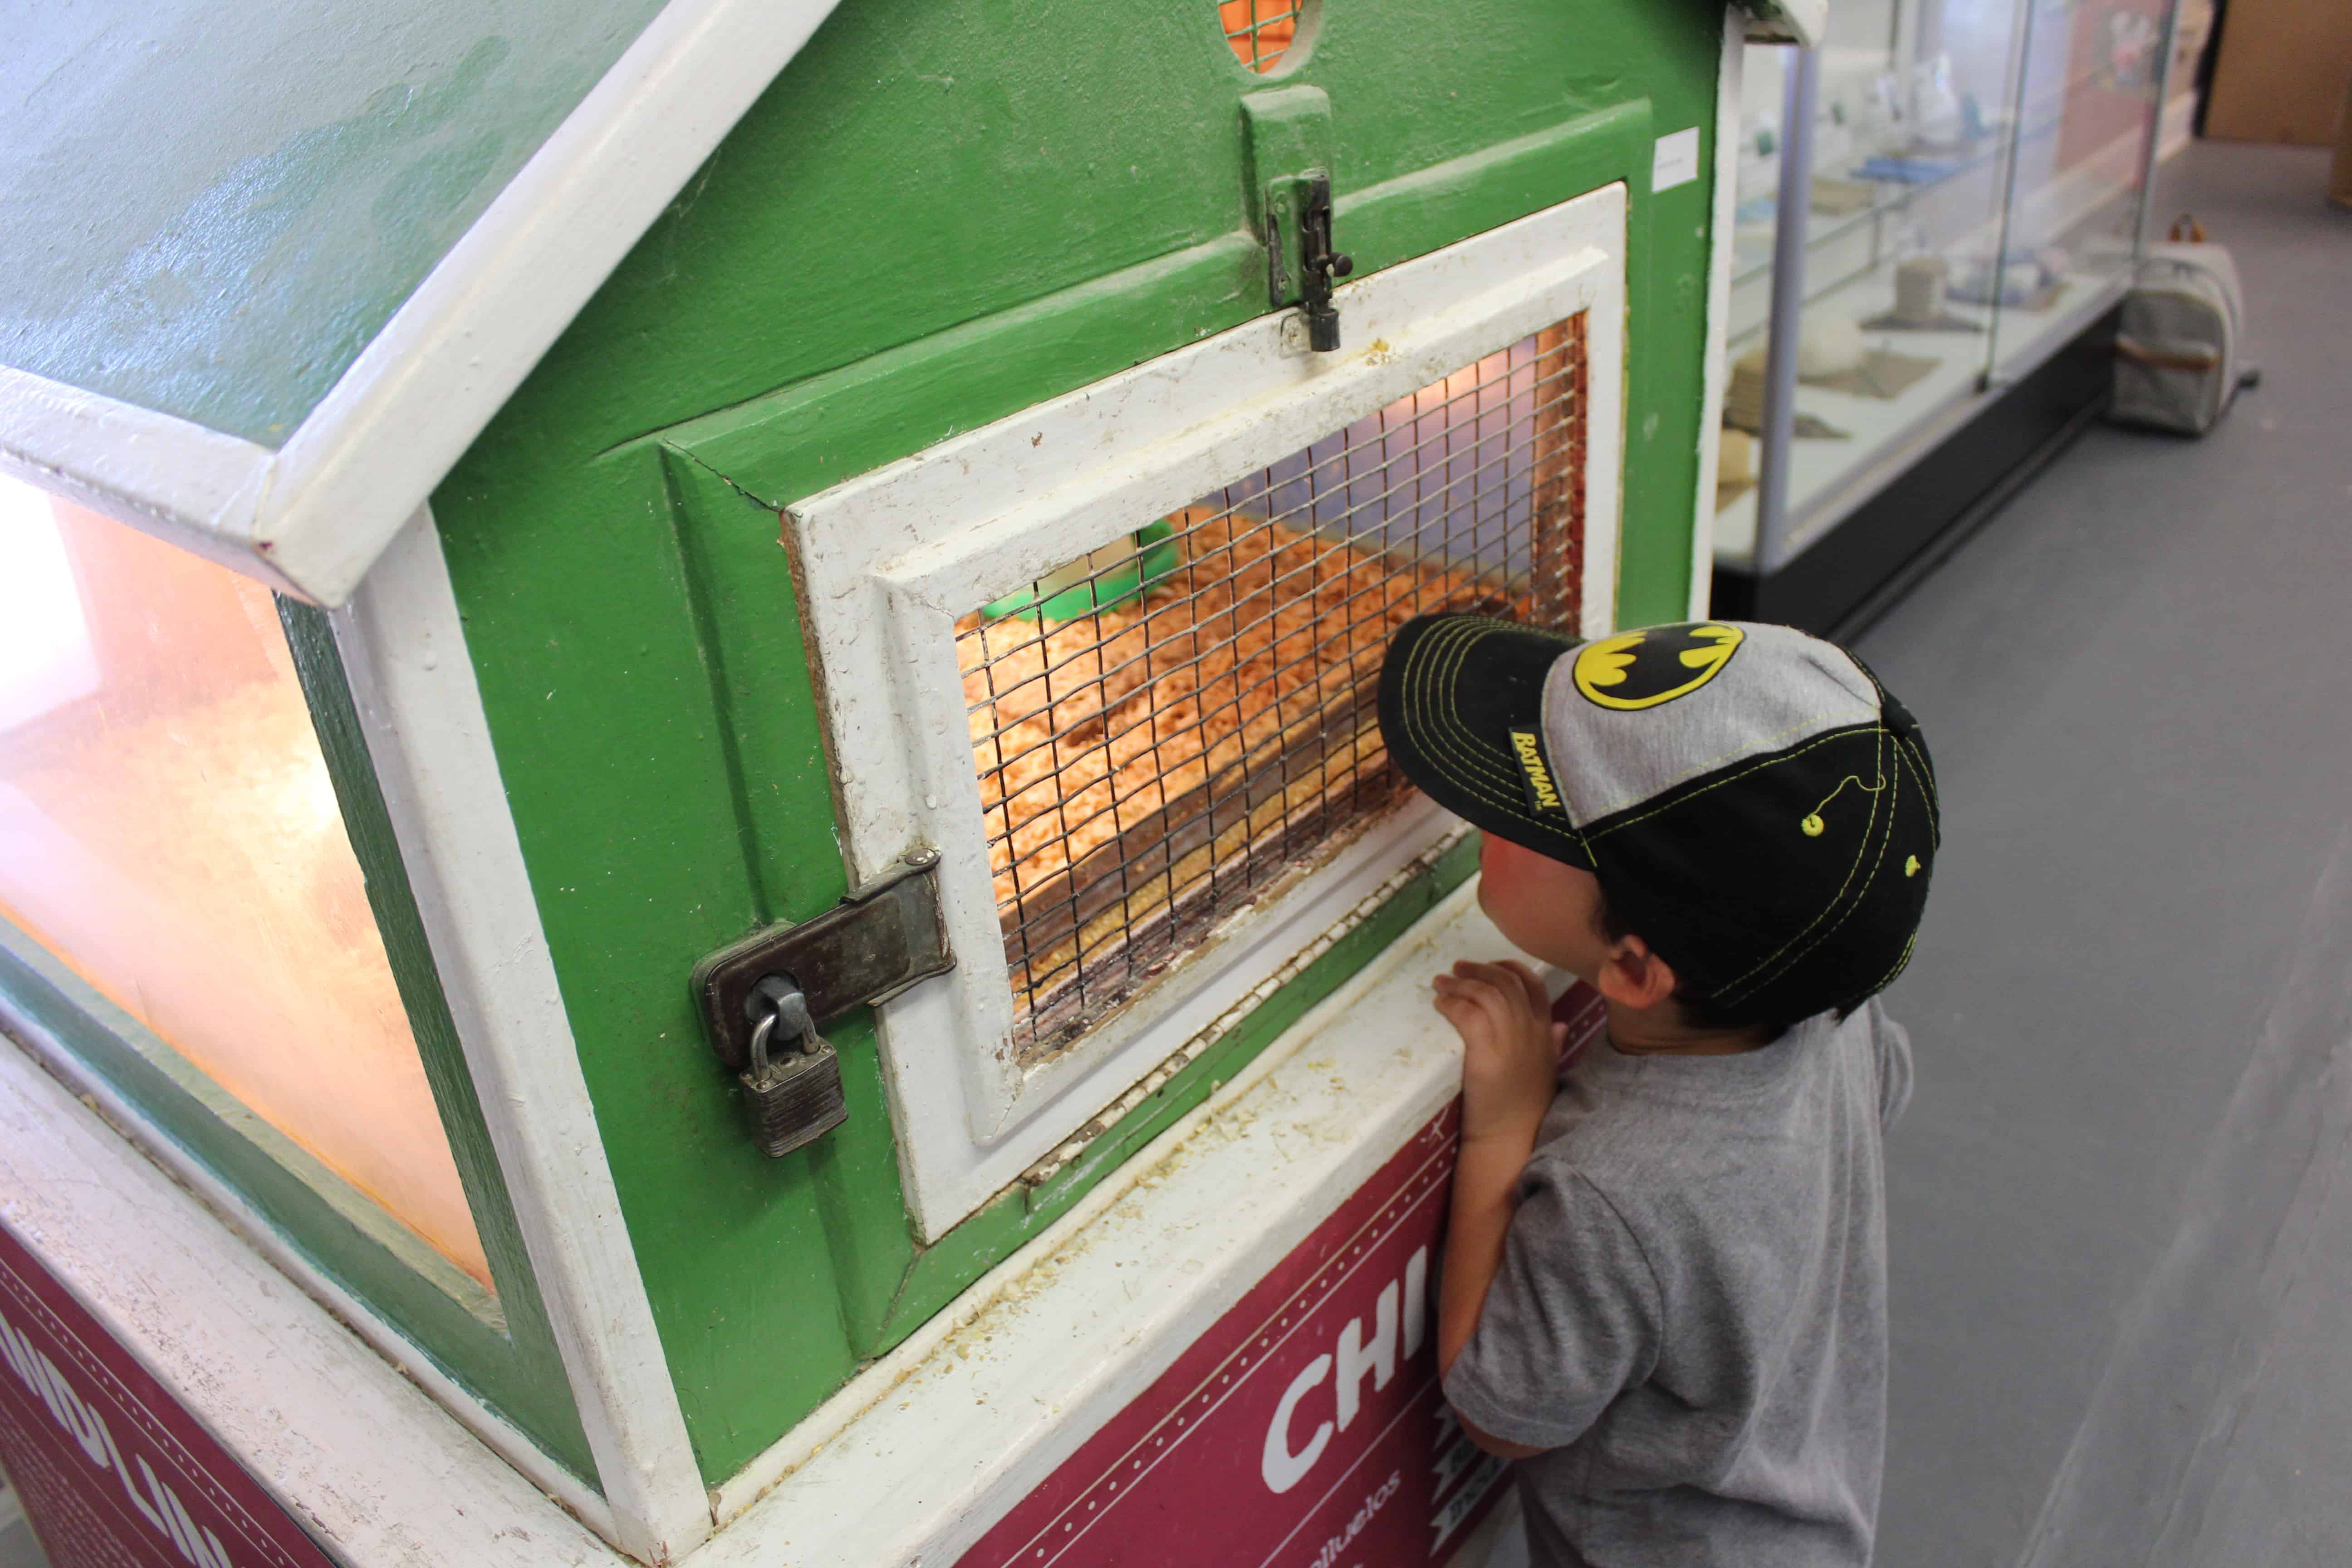 little boy looking at a coop with baby chicks